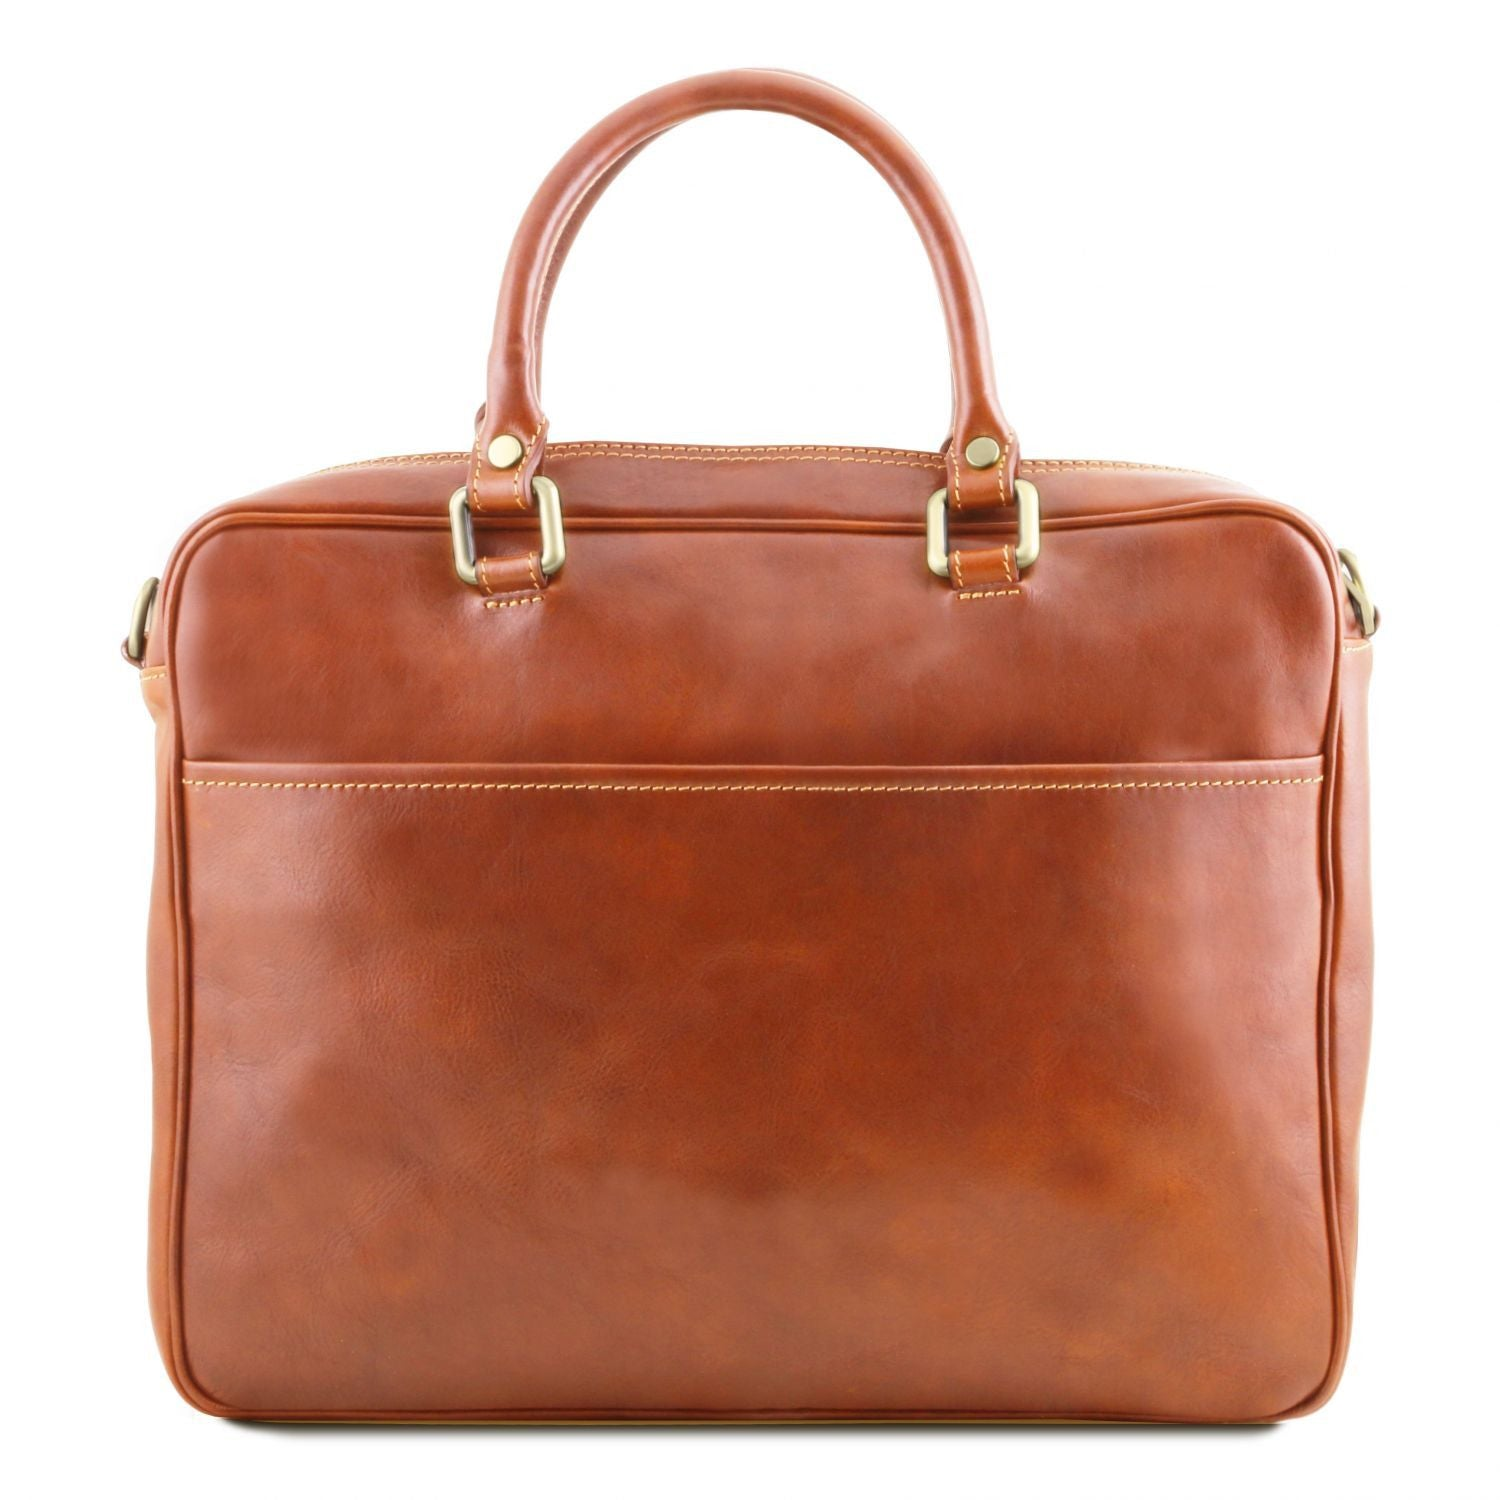 Pisa - Leather laptop briefcase with front pocket (TL141660) - Leather laptop bags | DILUSSOBAGS